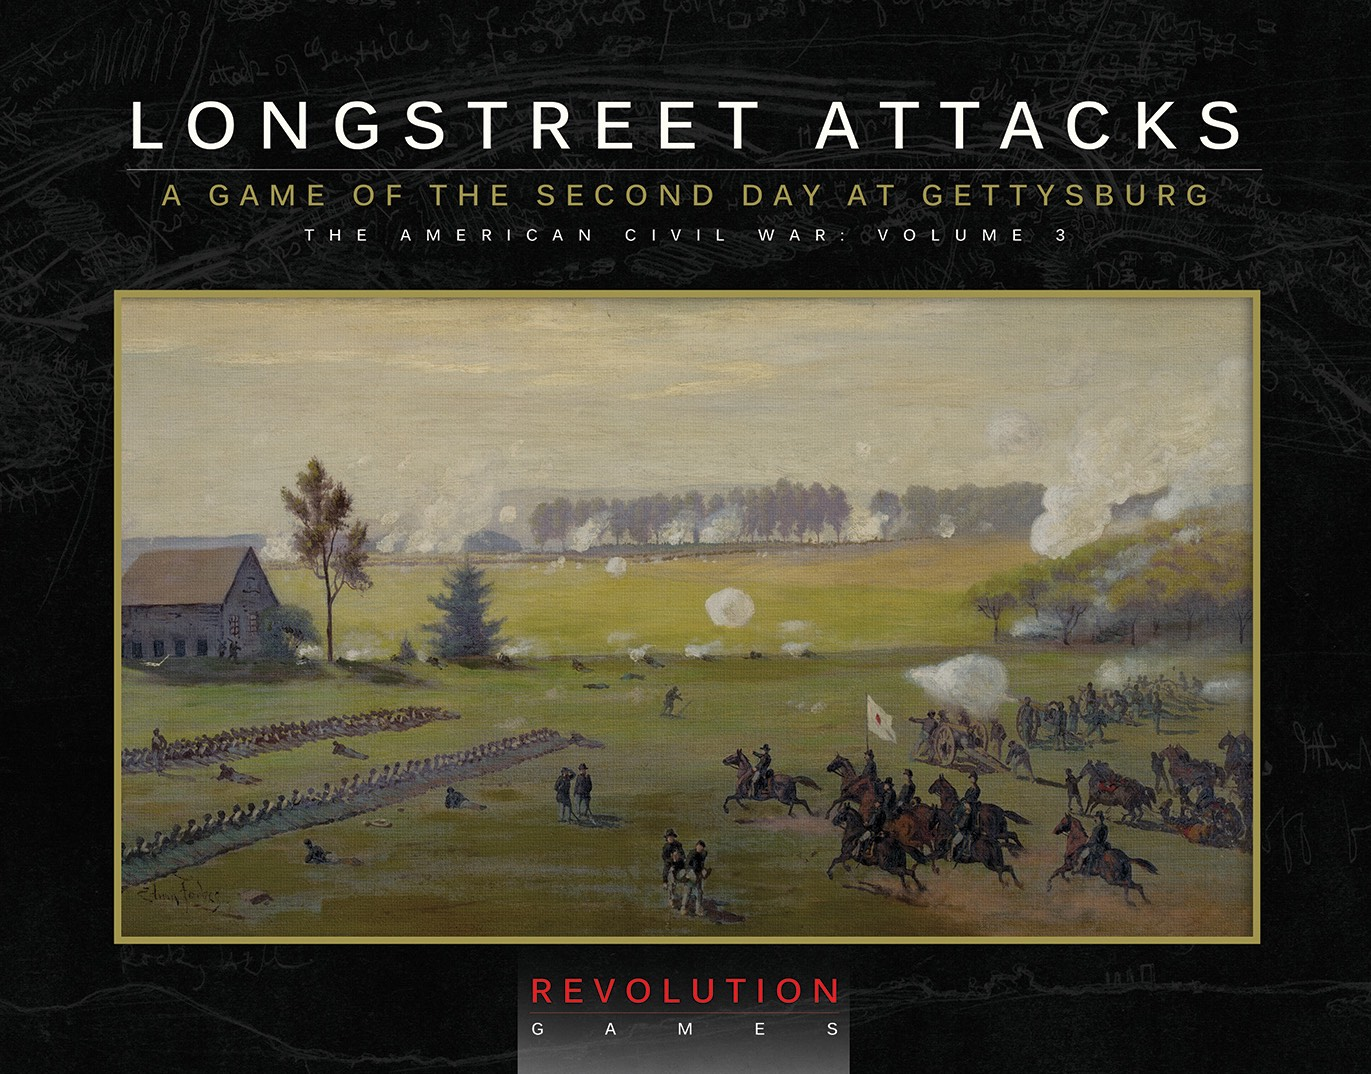 the wheatfield battle of gettsyburg essay Battle of gettysburg essaysthe battle of gettysburg is without question the most well known battle of the civil war evidence of this is the civil war reenactments, which take place the same.